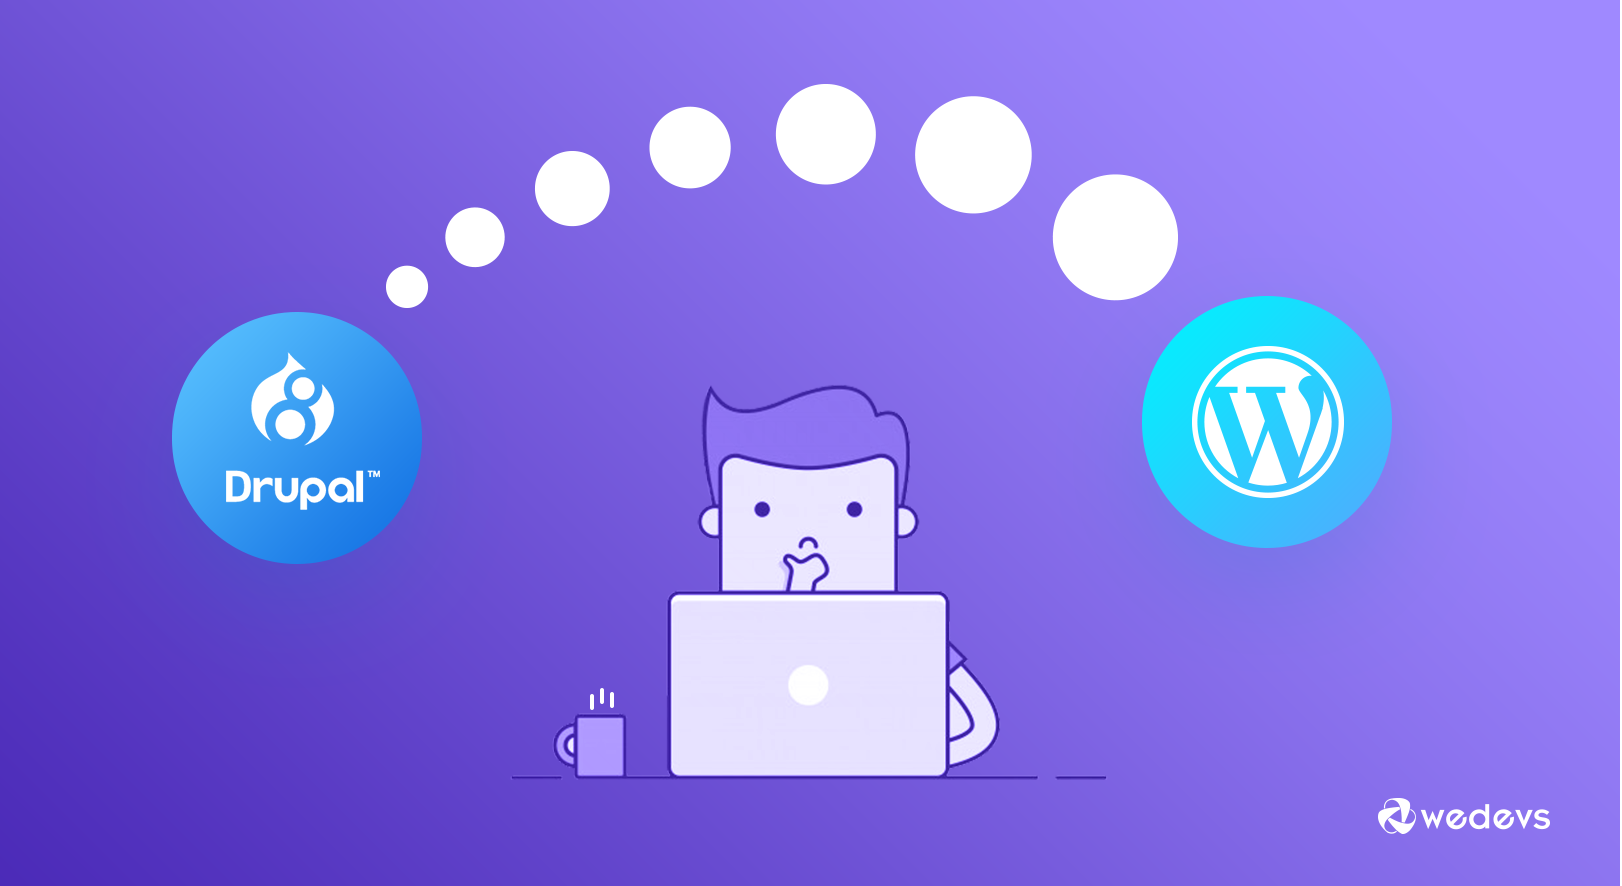 Drupal to WordPress weDevs